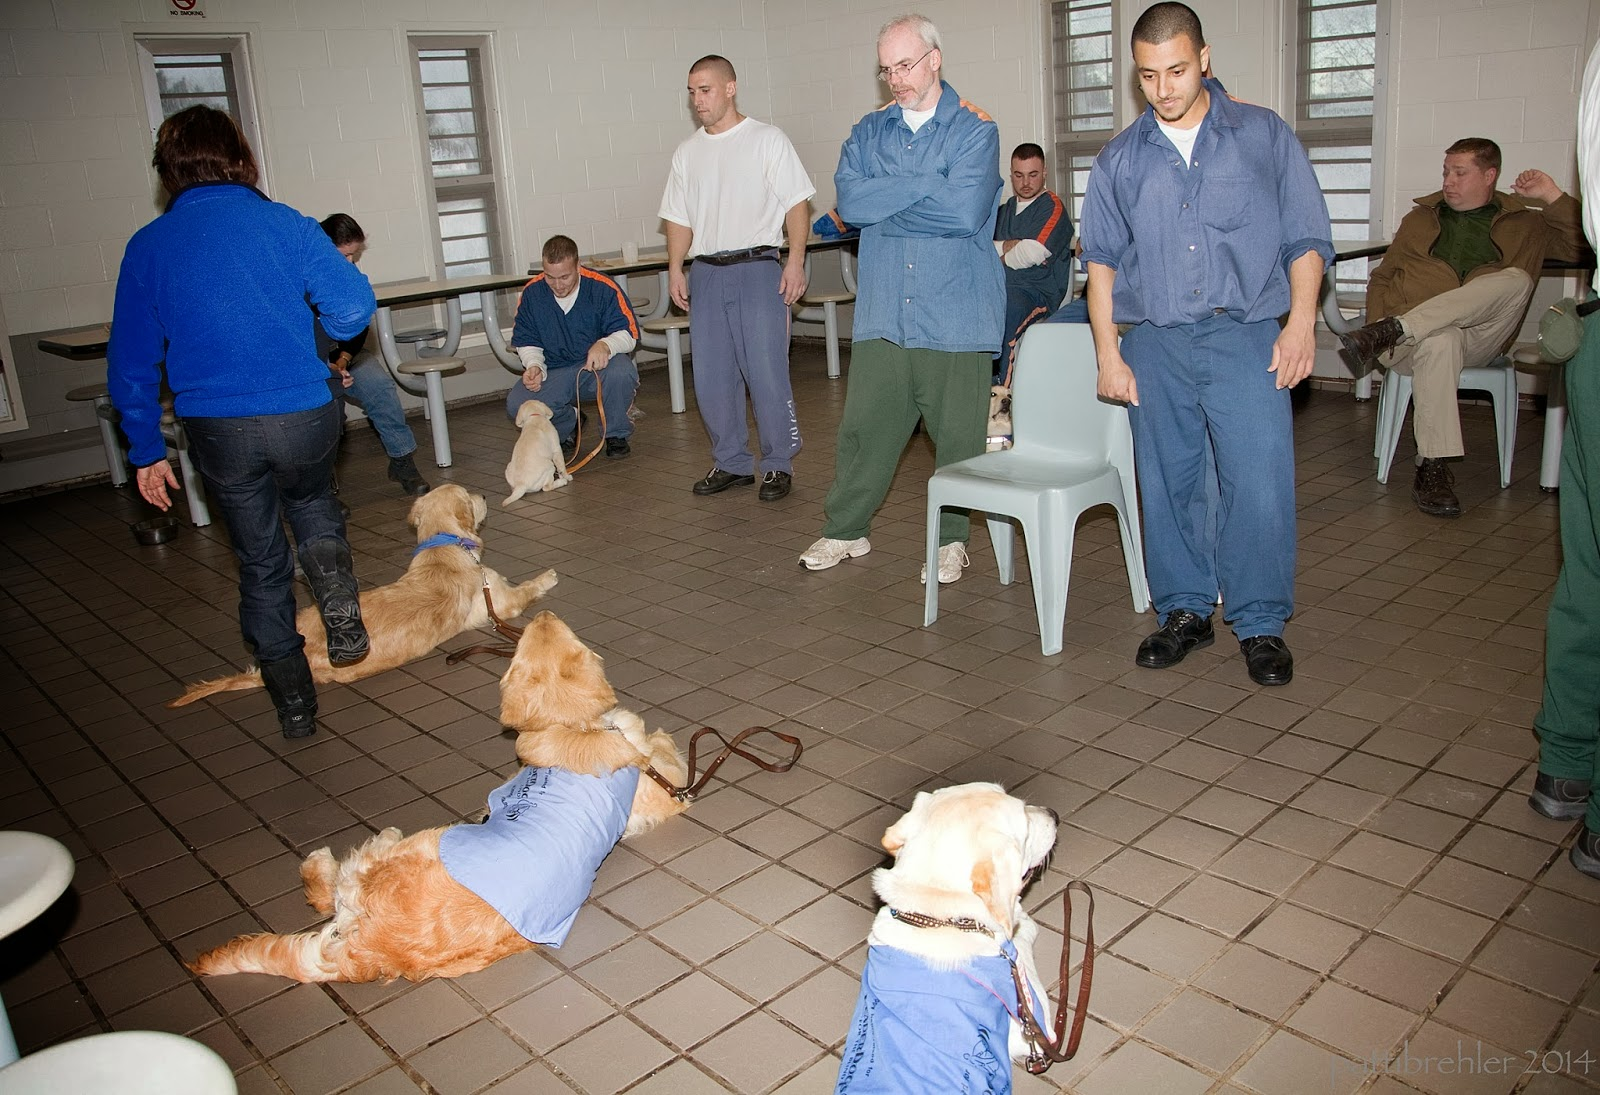 Three large puppies lie on a light colored tile floor while a woman dressed in a blue fleece jacket and blue jeans steps over them. She is on the left side facing away from the camera. Three inmate raisers stand opposite the dogs, facing the camera. There are several other men sitting in the background.